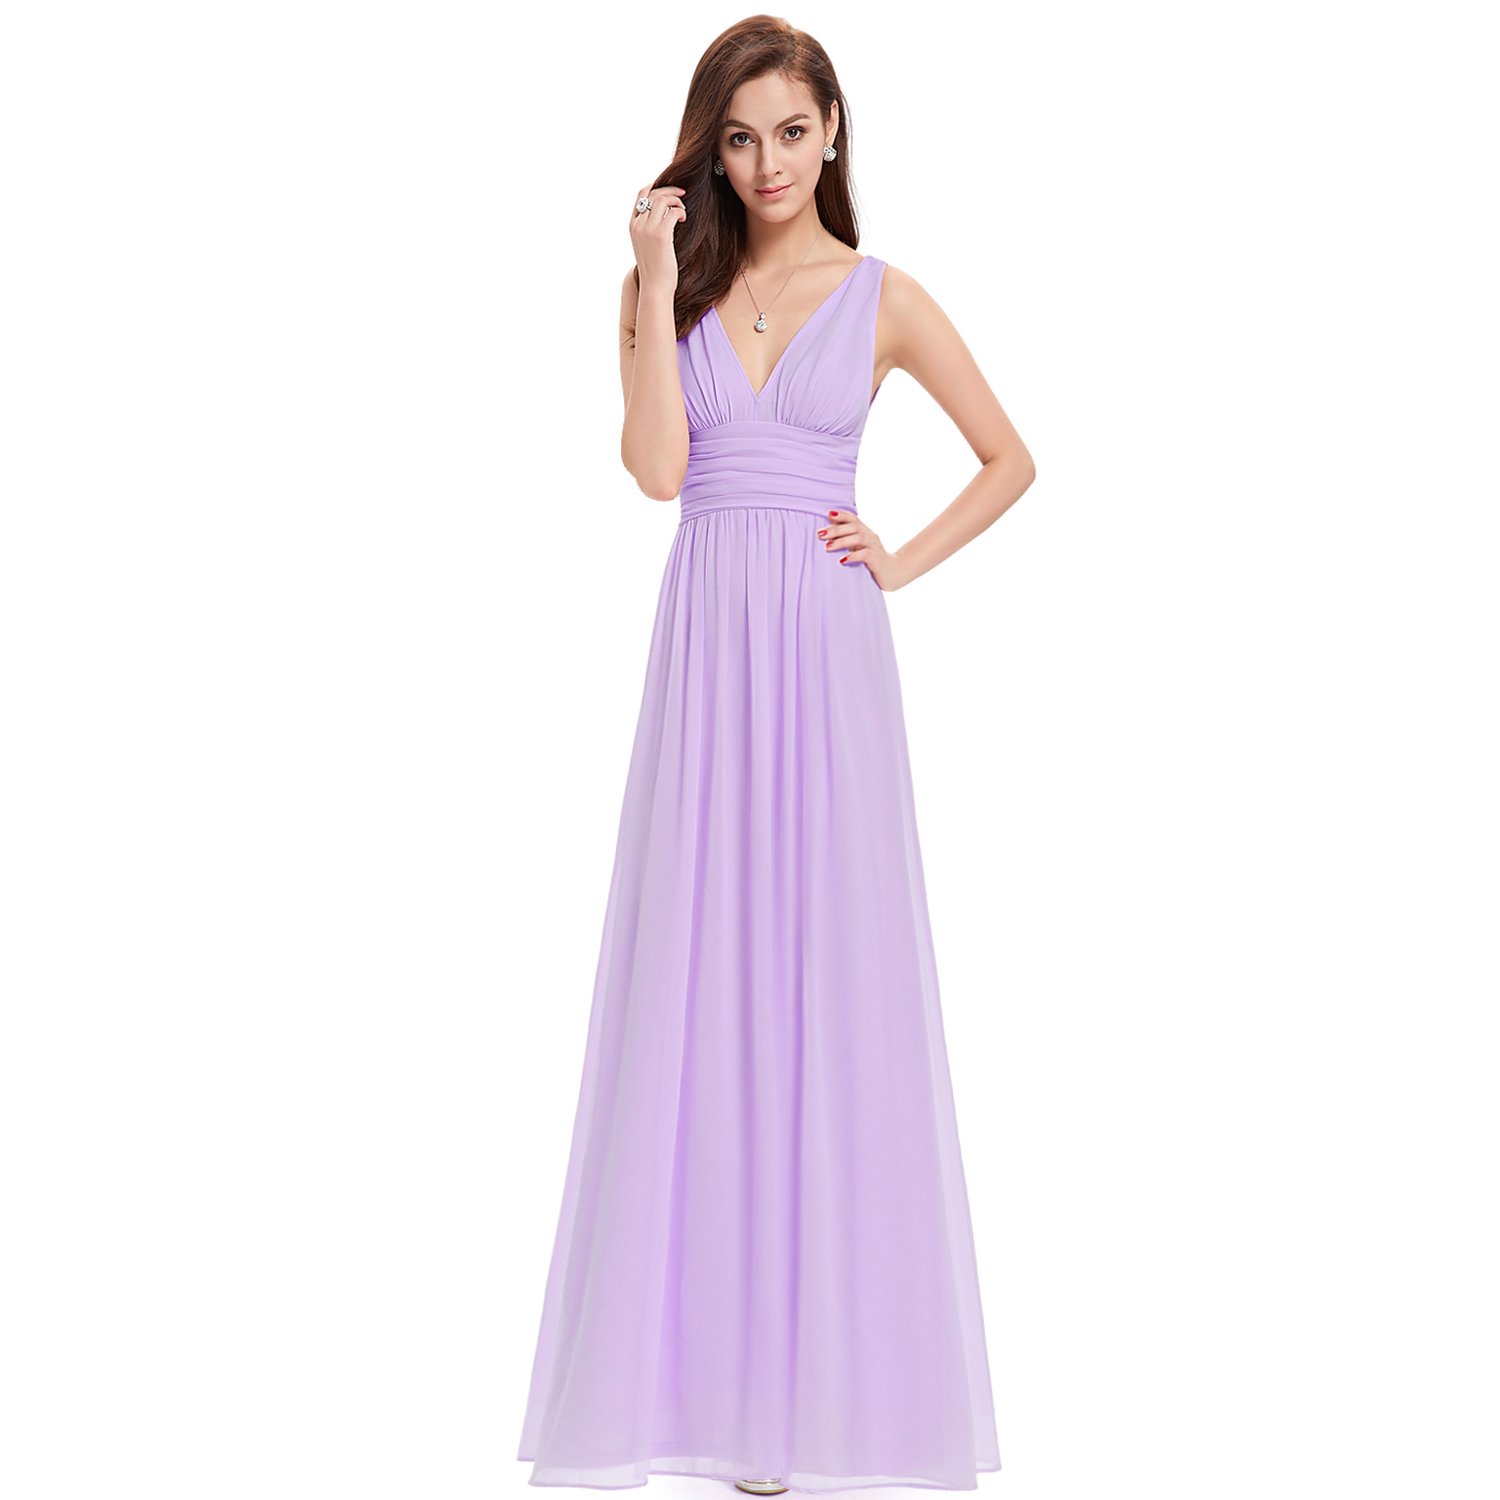 Long Chiffon Prom Dress Wedding Evening Formal Party Ball Gown ...